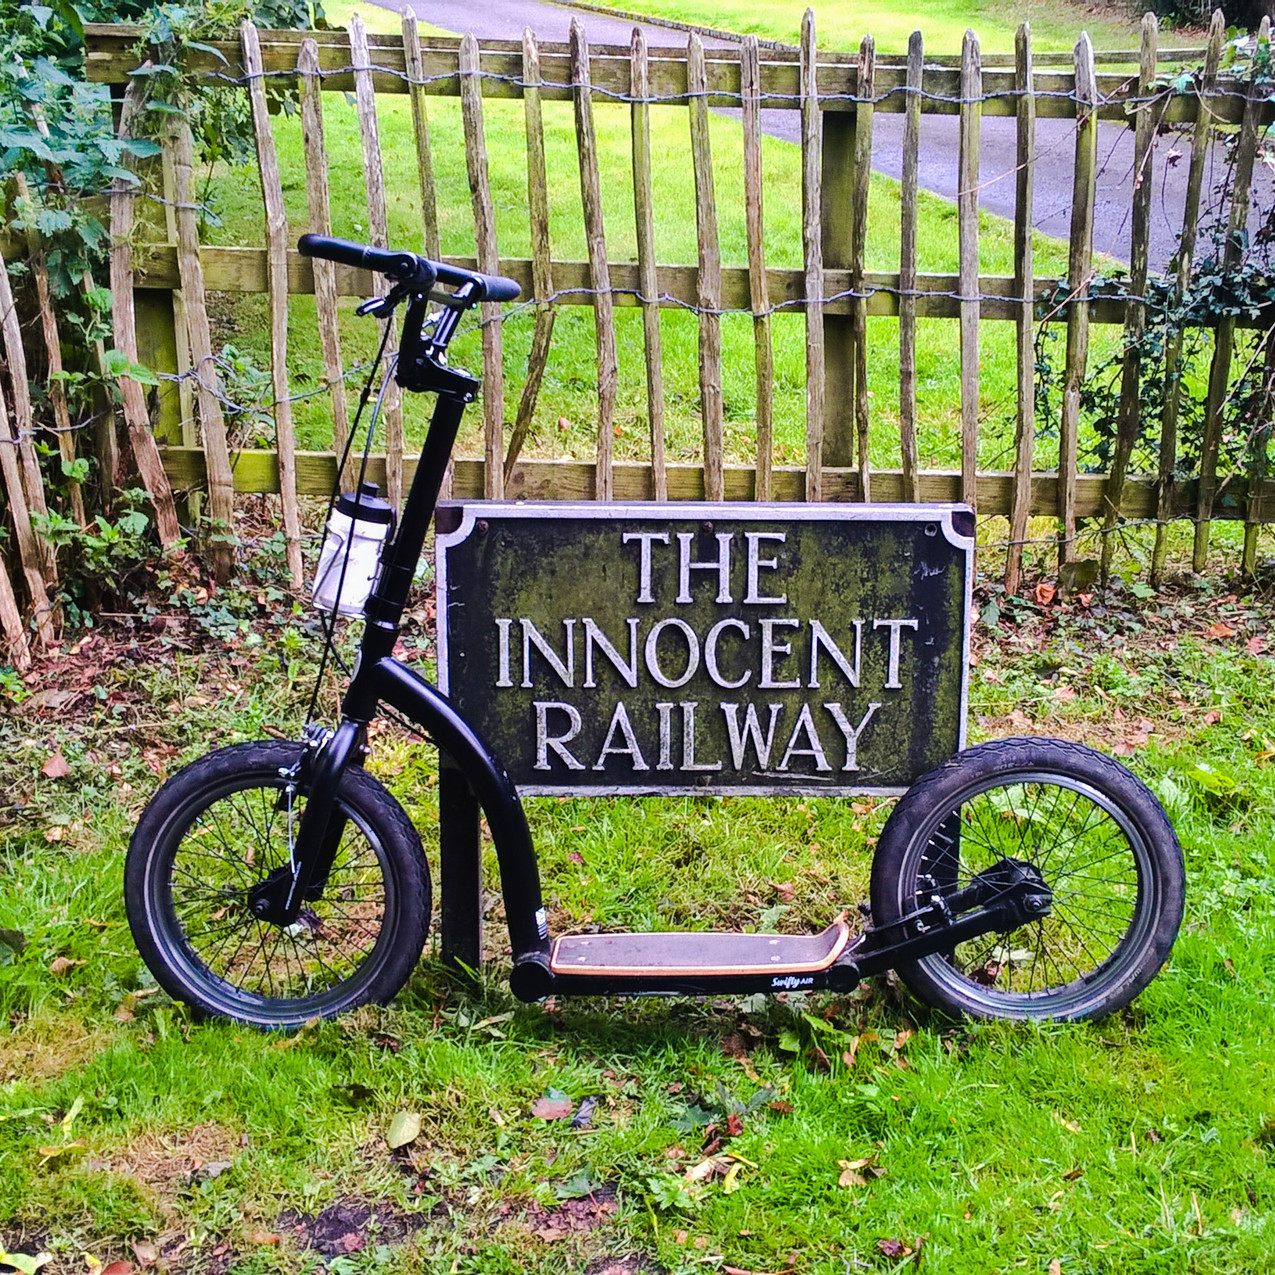 The Innocent Railway